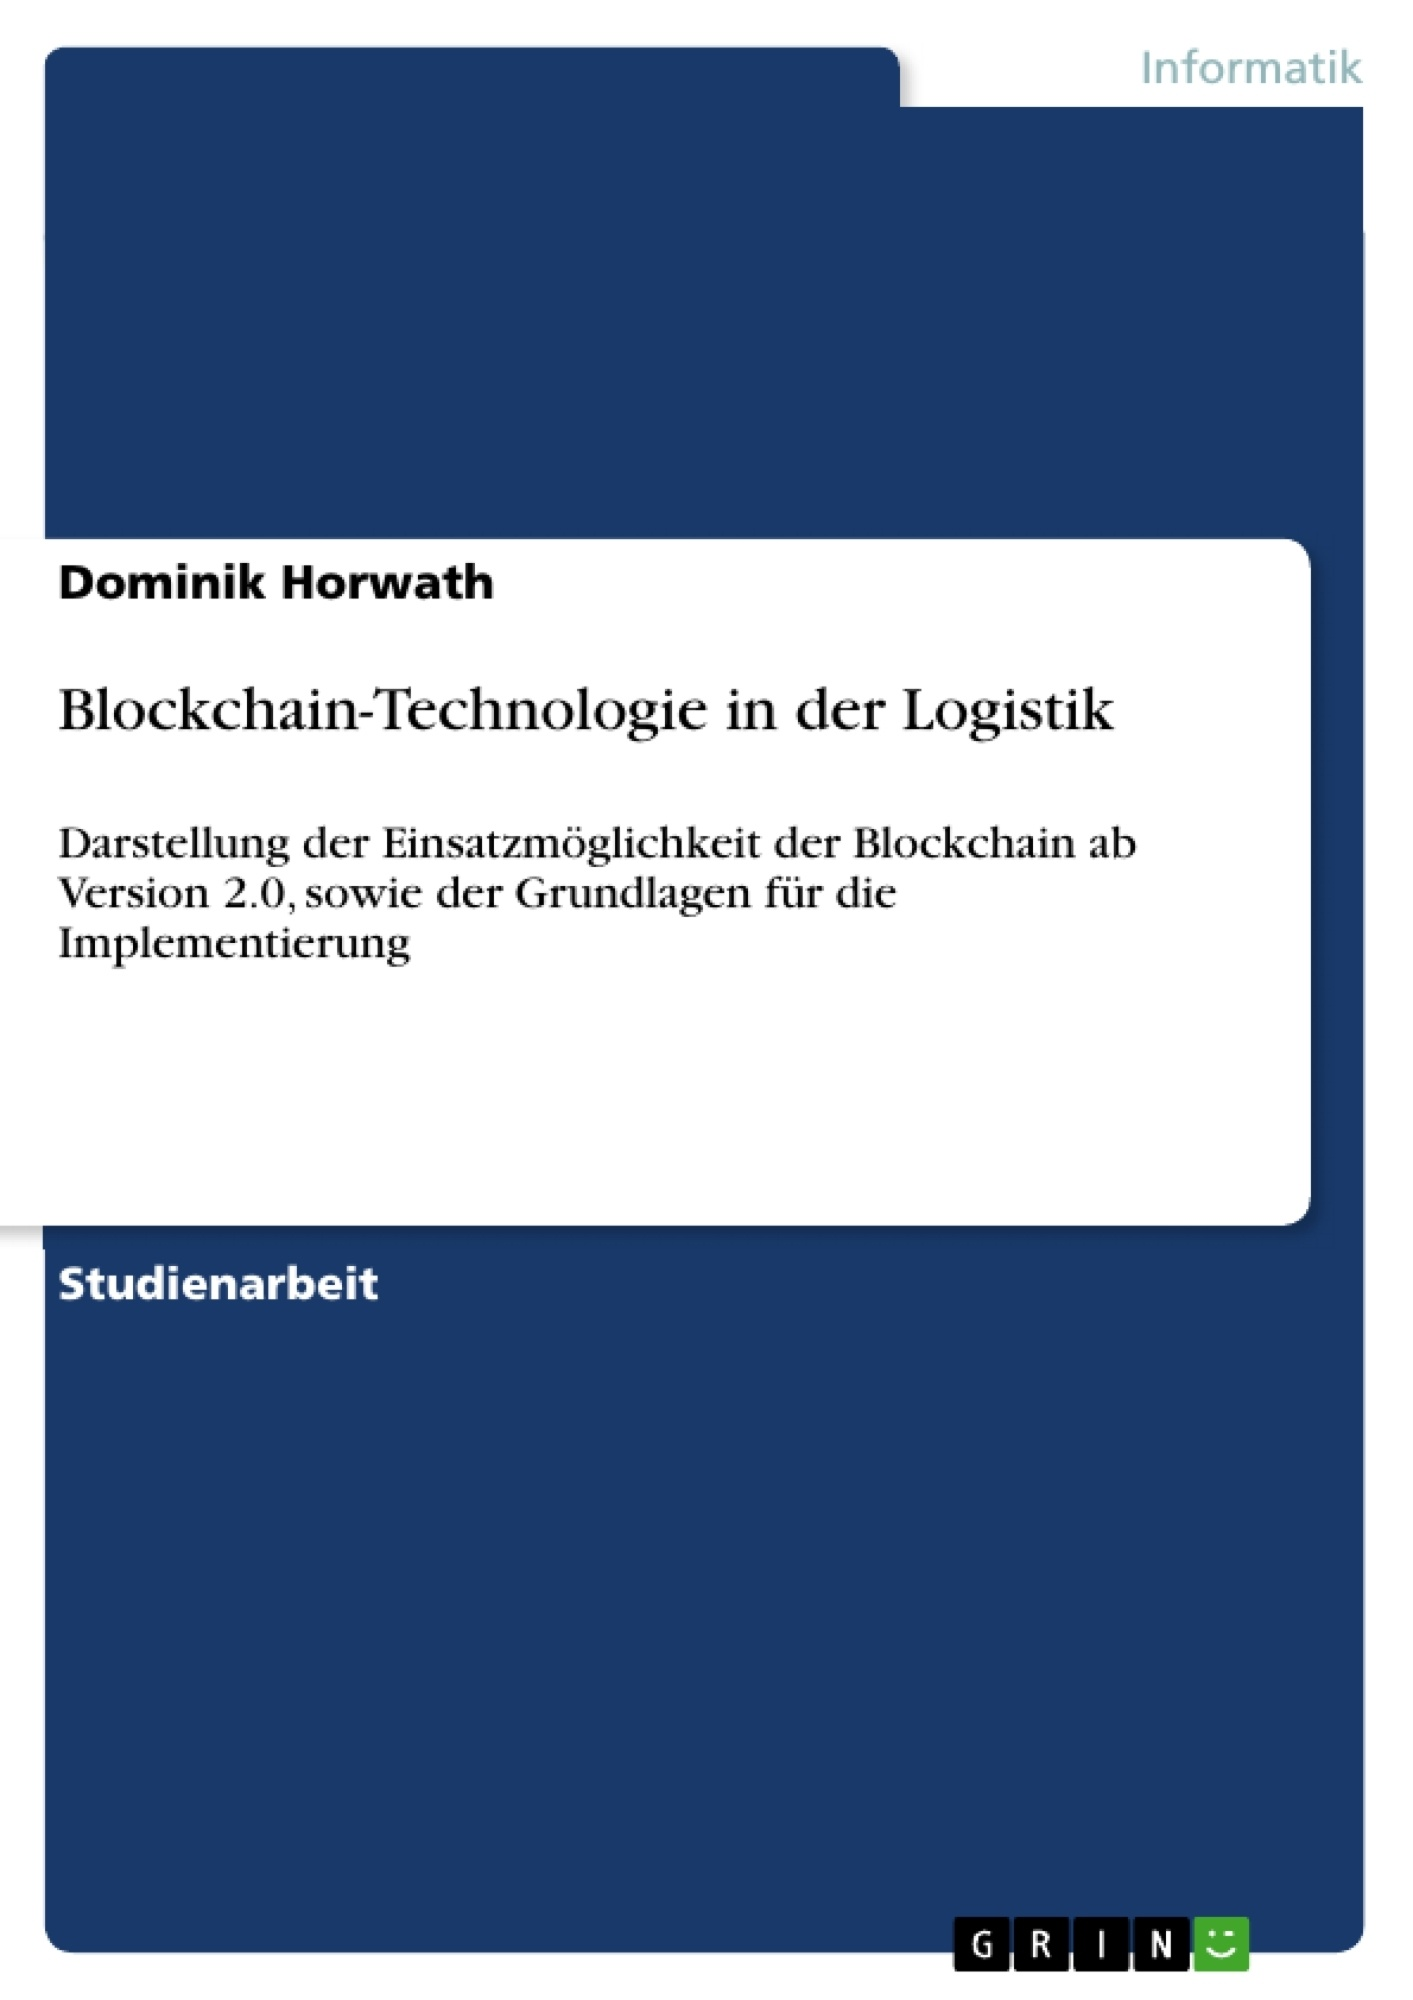 Titel: Blockchain-Technologie in der Logistik